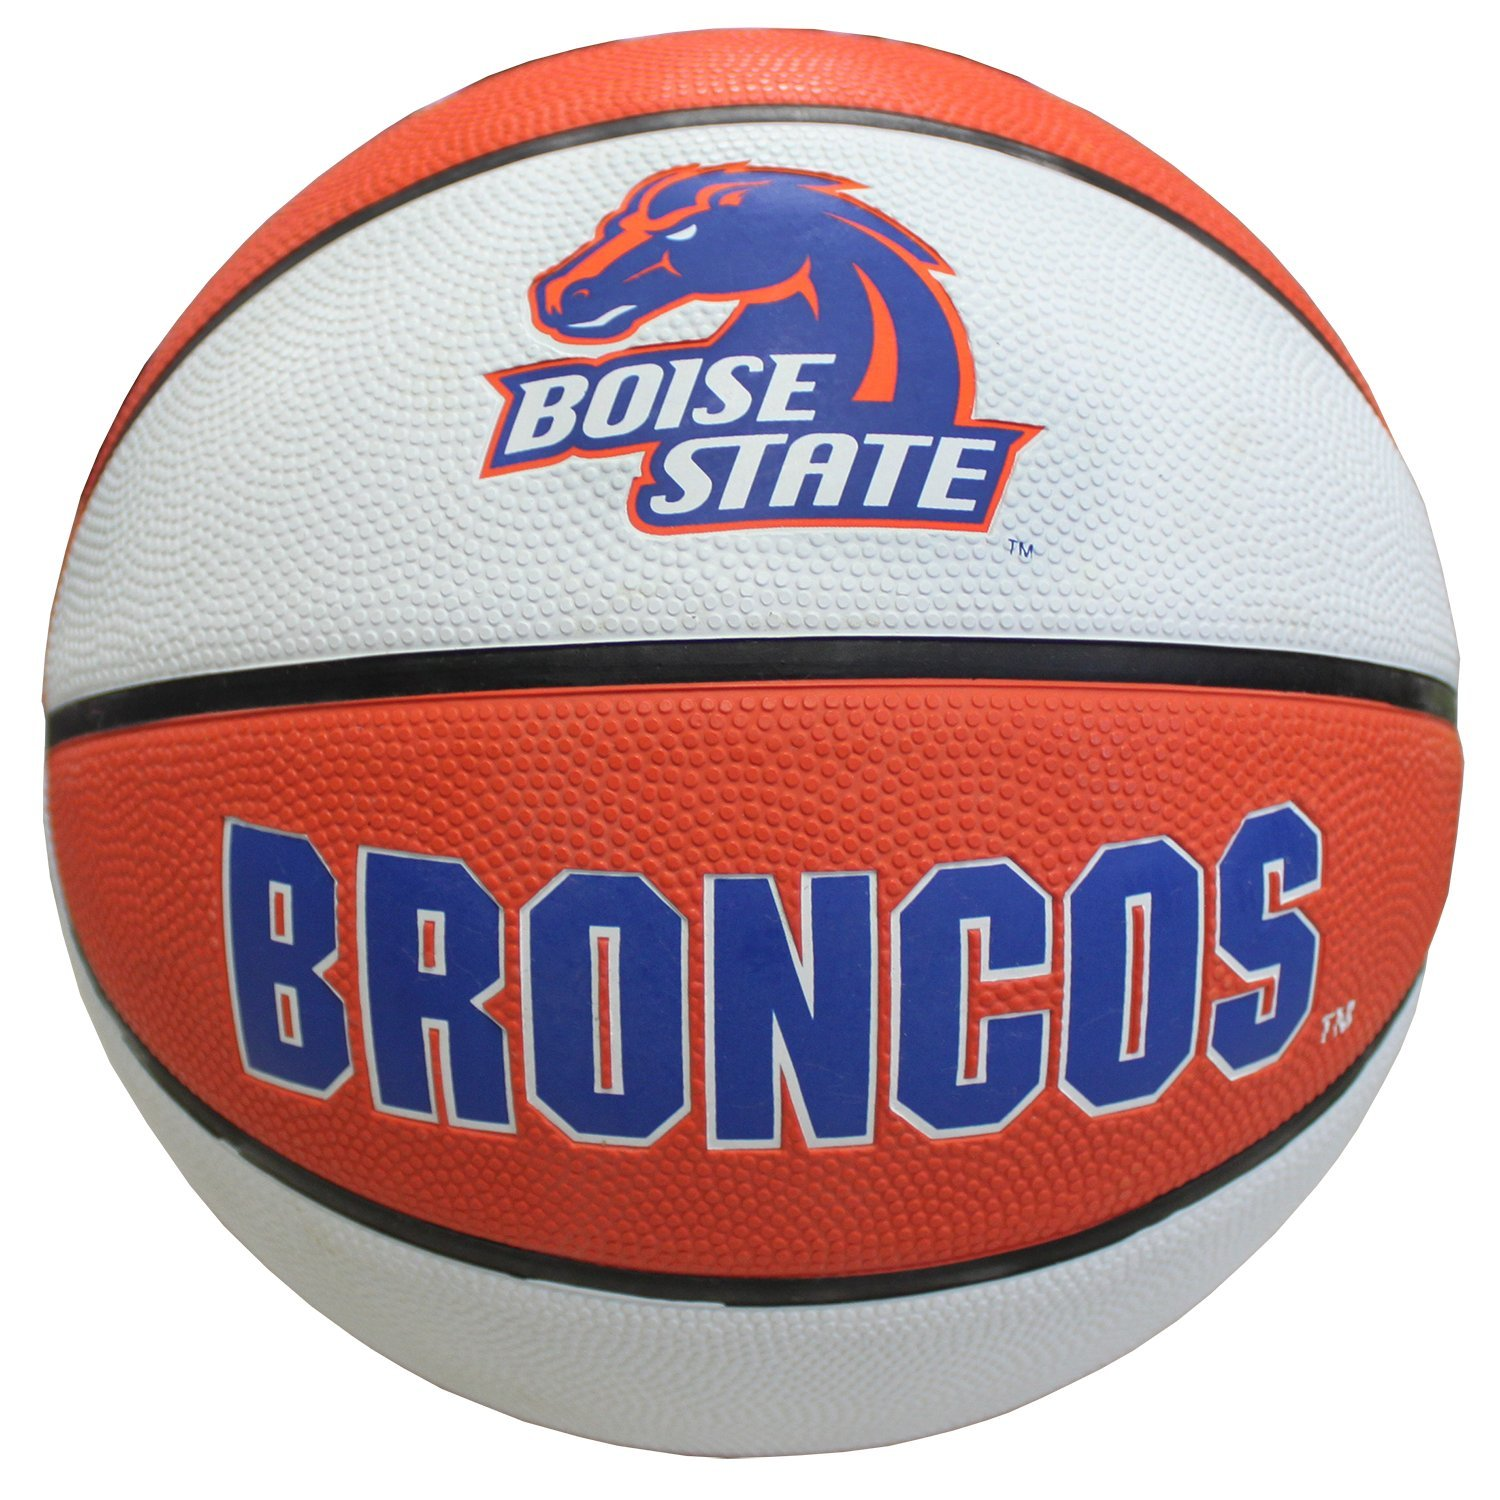 Boise State Broncos Basketball